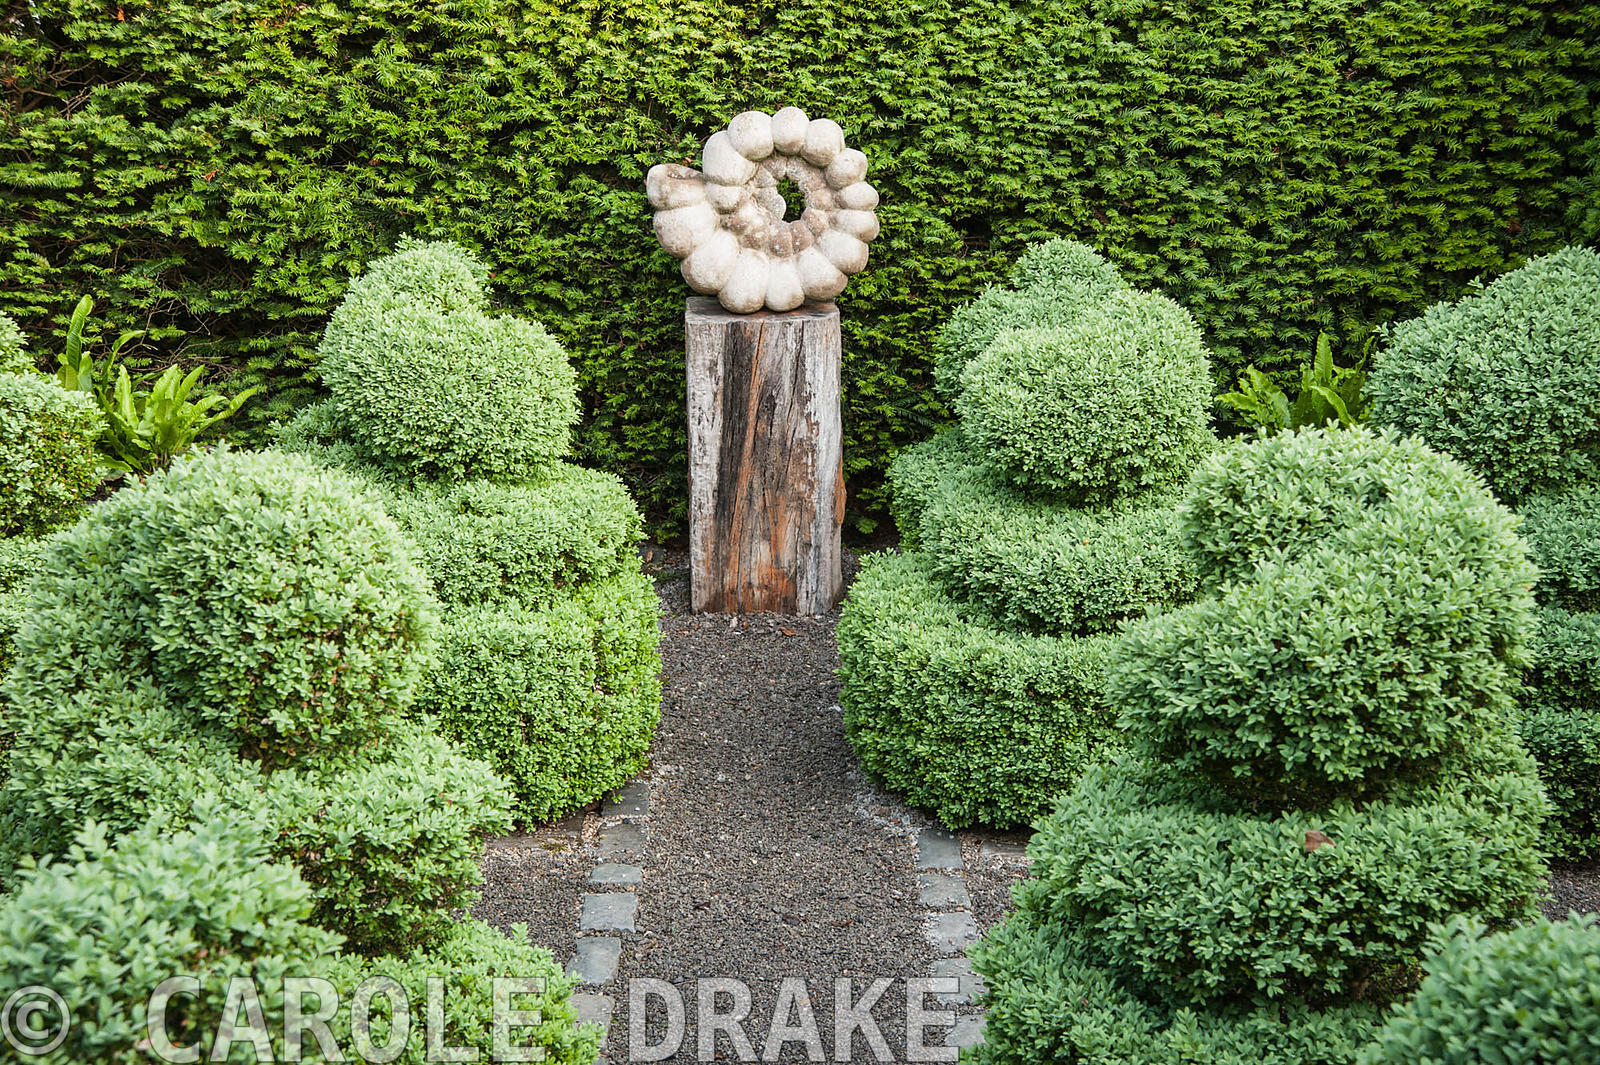 Ammonite sculpture by Darren Yeadon surrounded by box topiary, set within yew hedges. Tony Ridler's Garden, Cockett, Swansea, UK